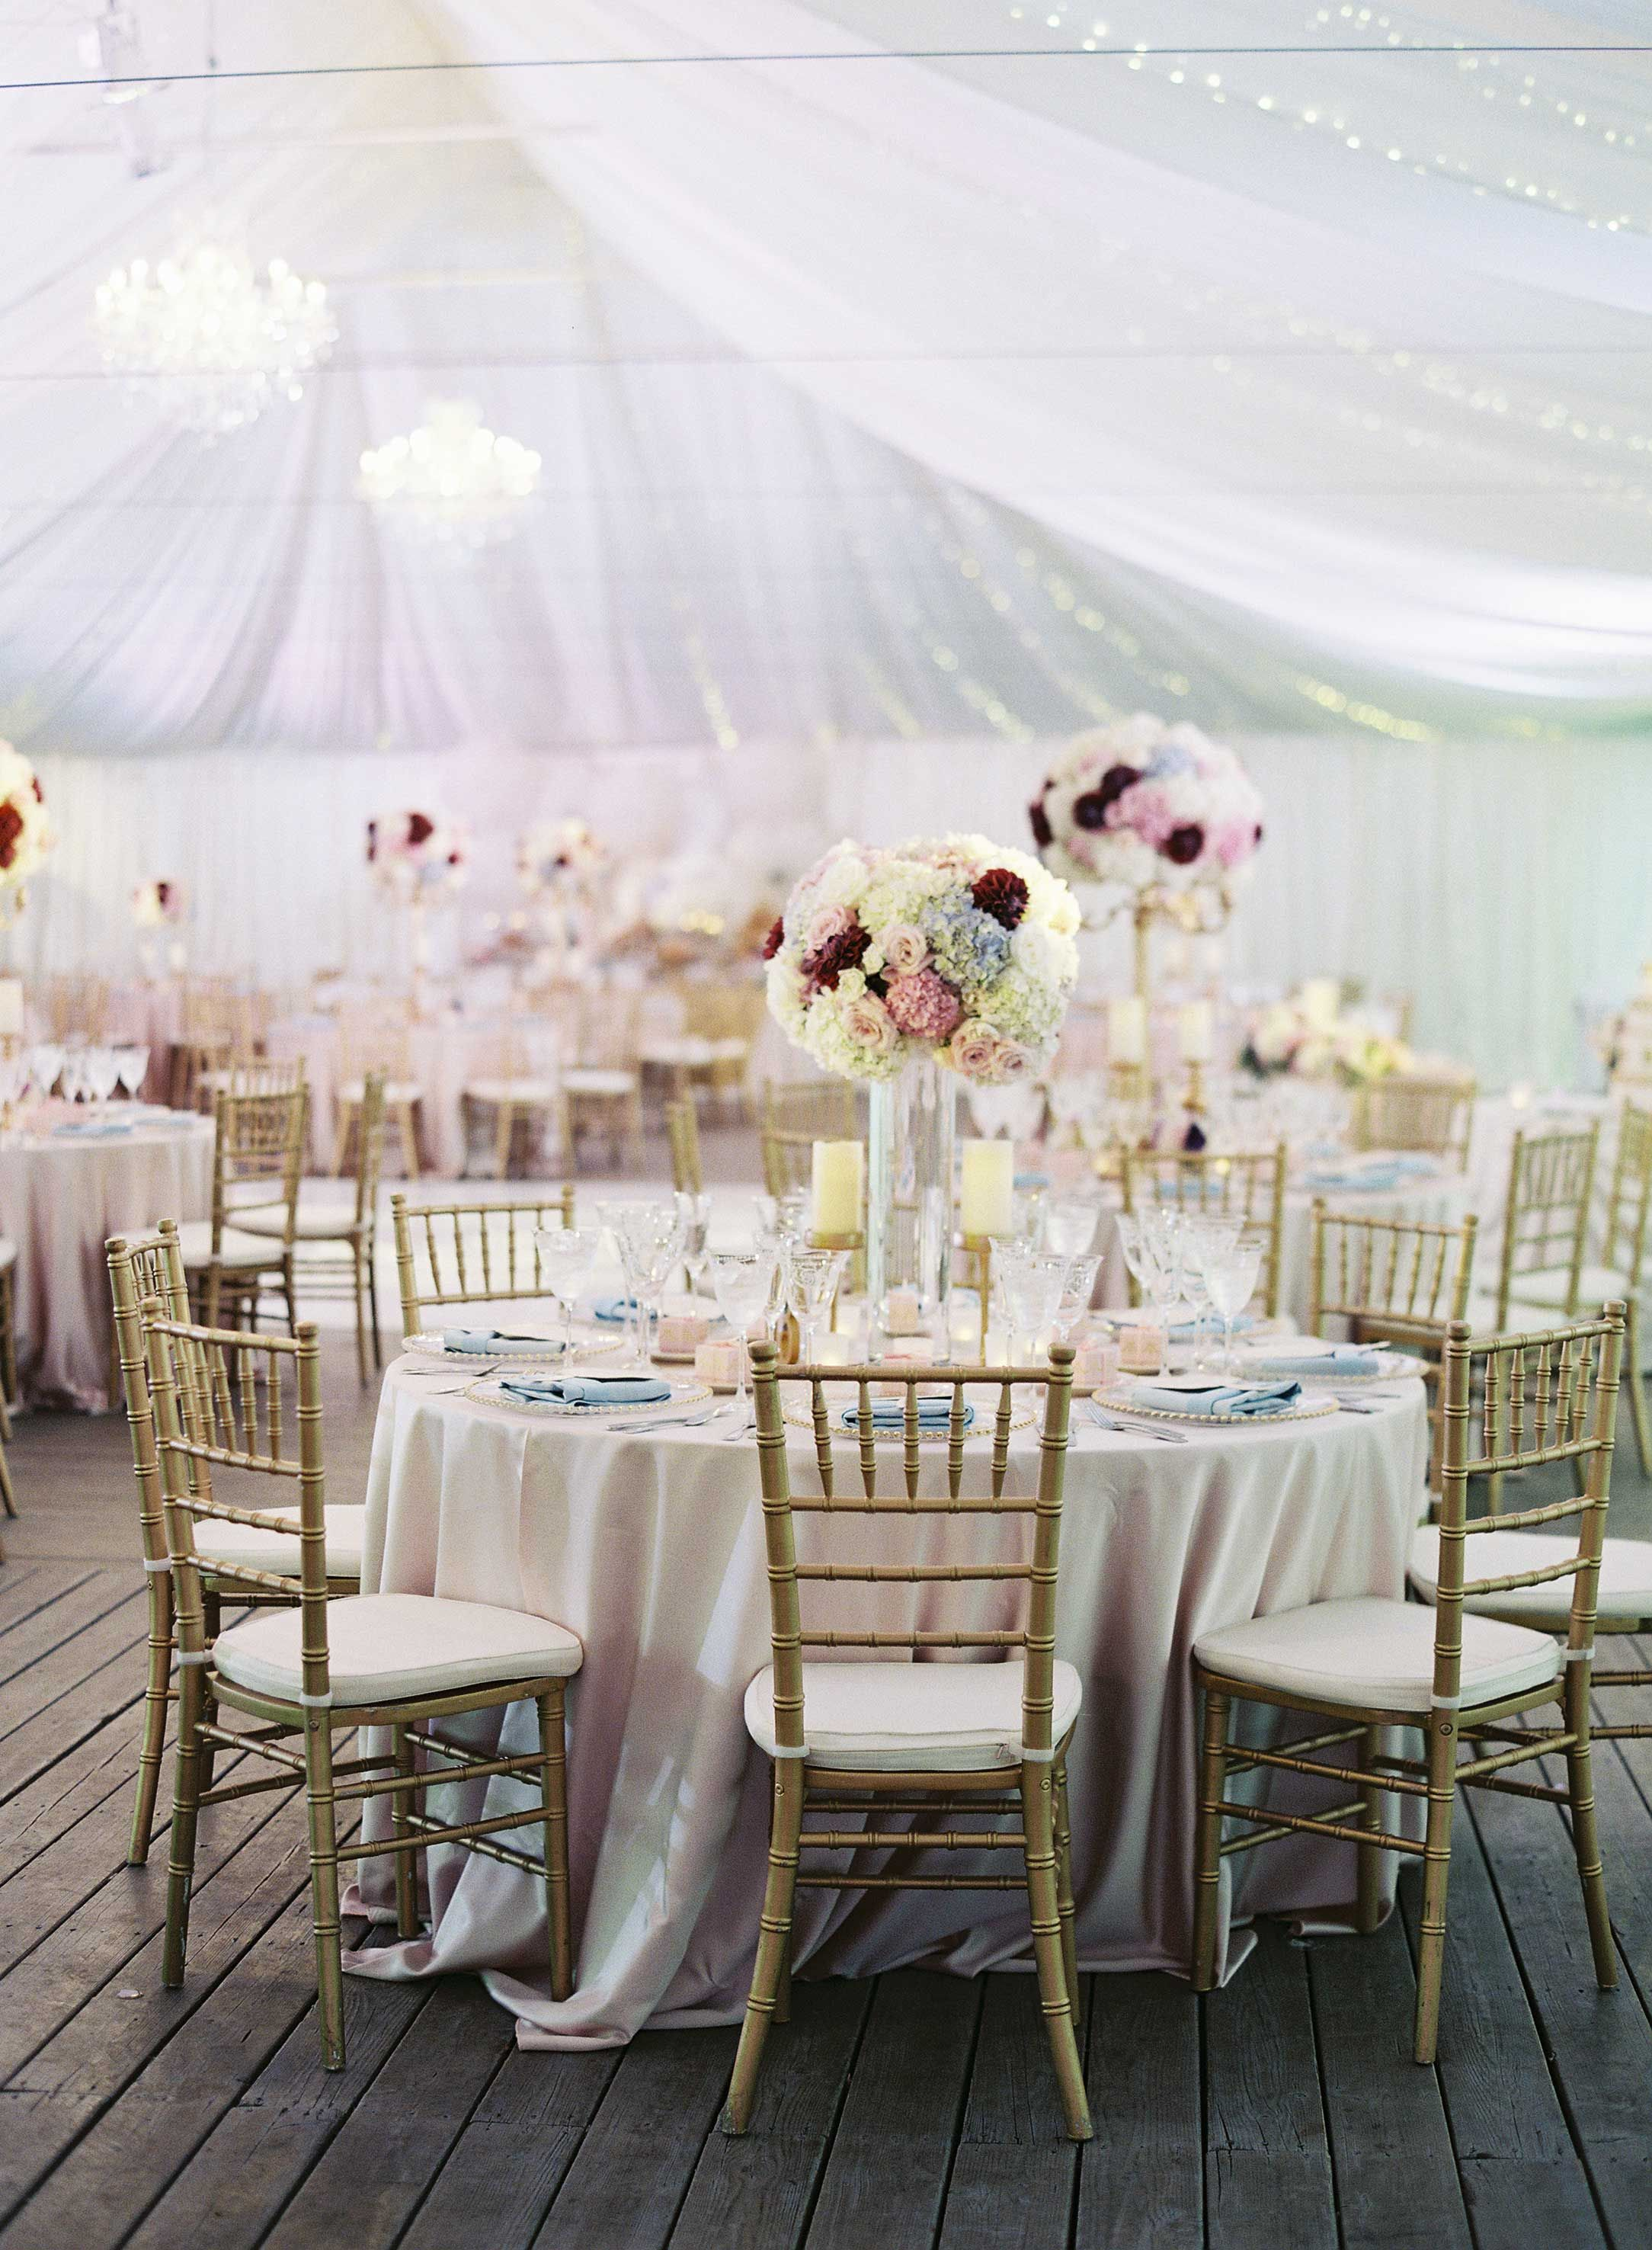 Magical Garden Ceremony + Tented Reception with Chic French Theme ...